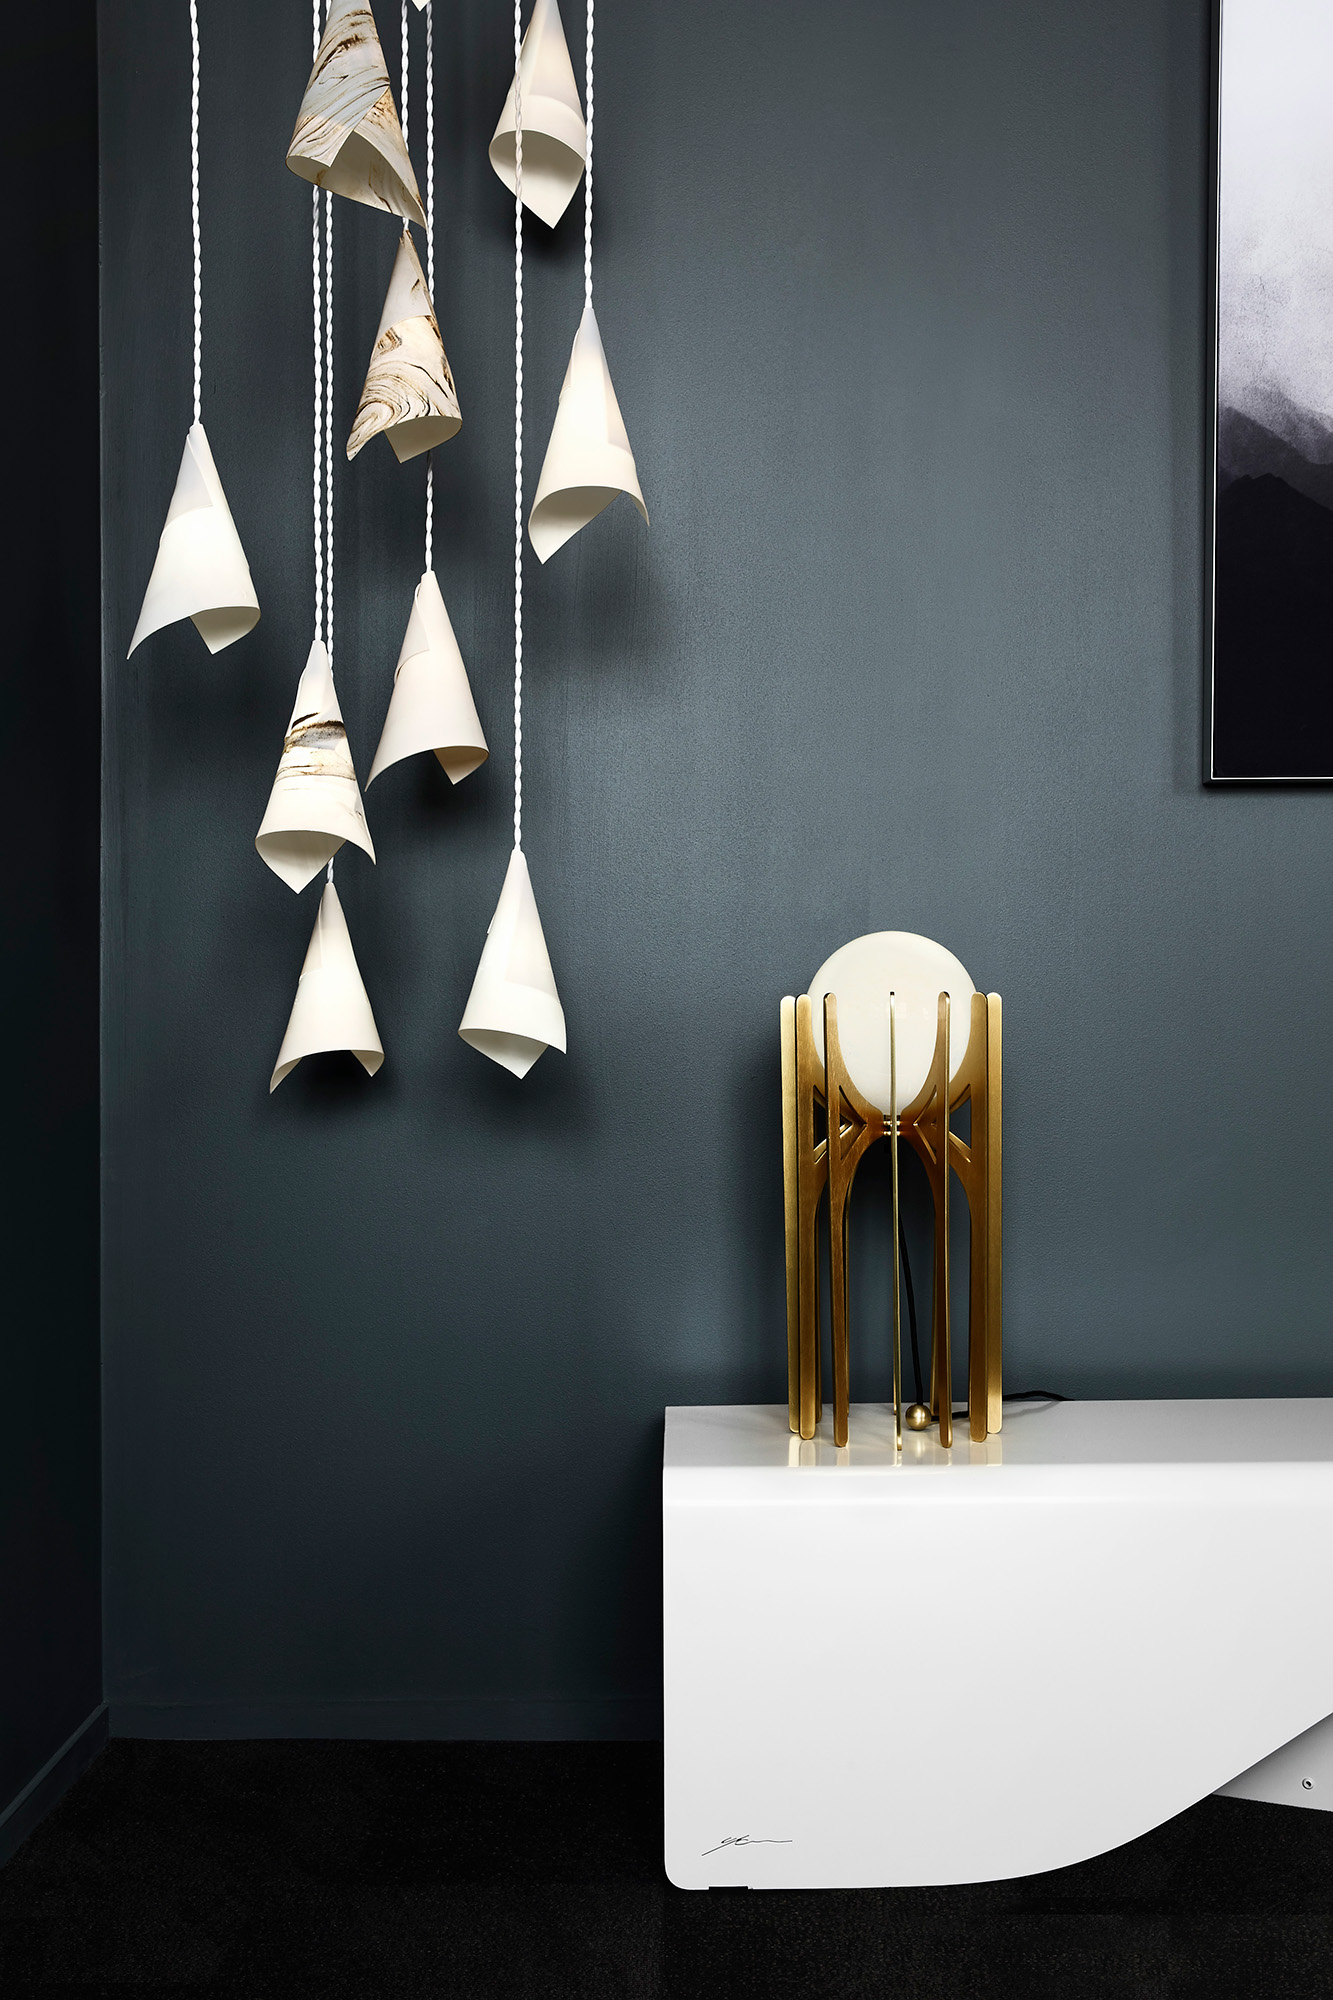 Ilan El of ILANEL - Feature Interview - Australian Lighting Design - Photographed by Lillie Thompson - Image 12